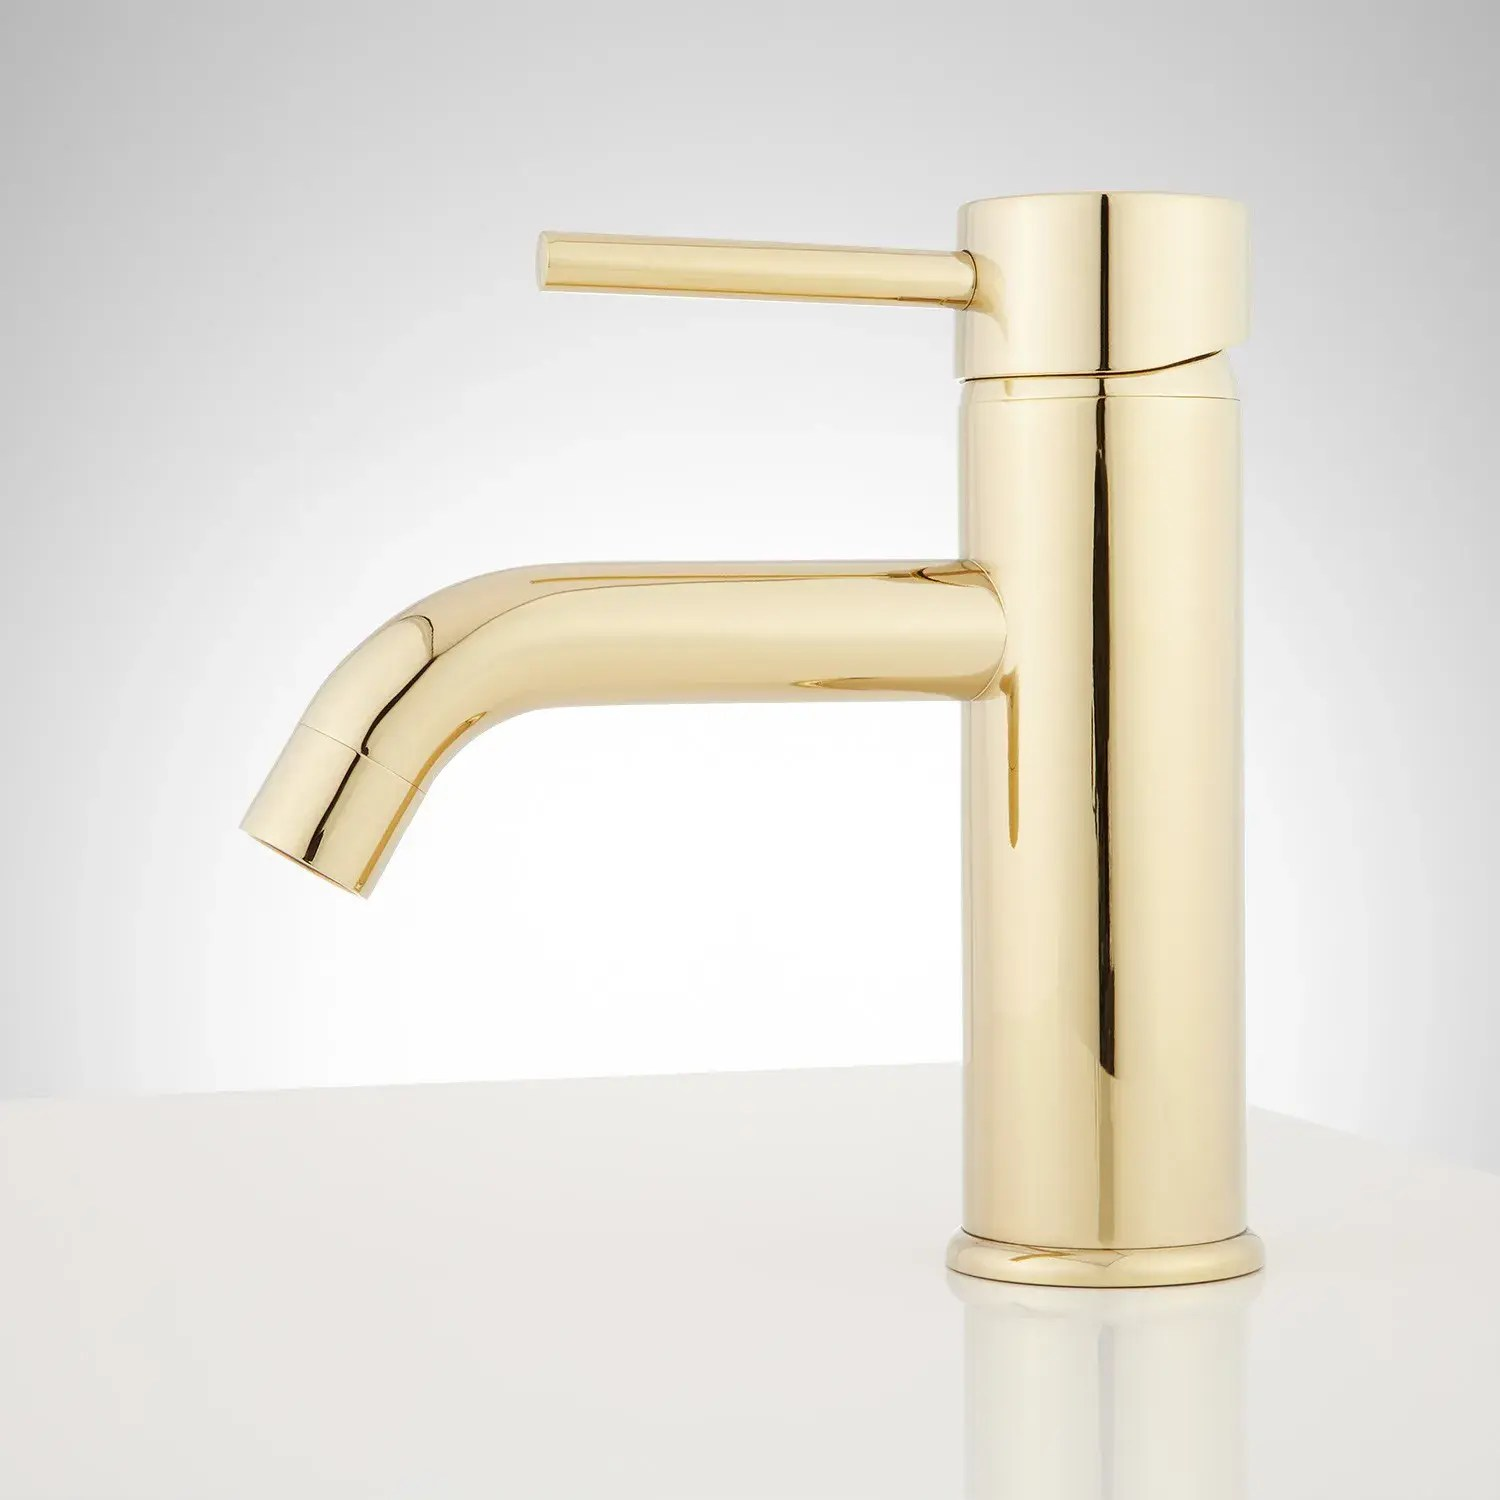 hewitt single hole bathroom faucet with pop up drain